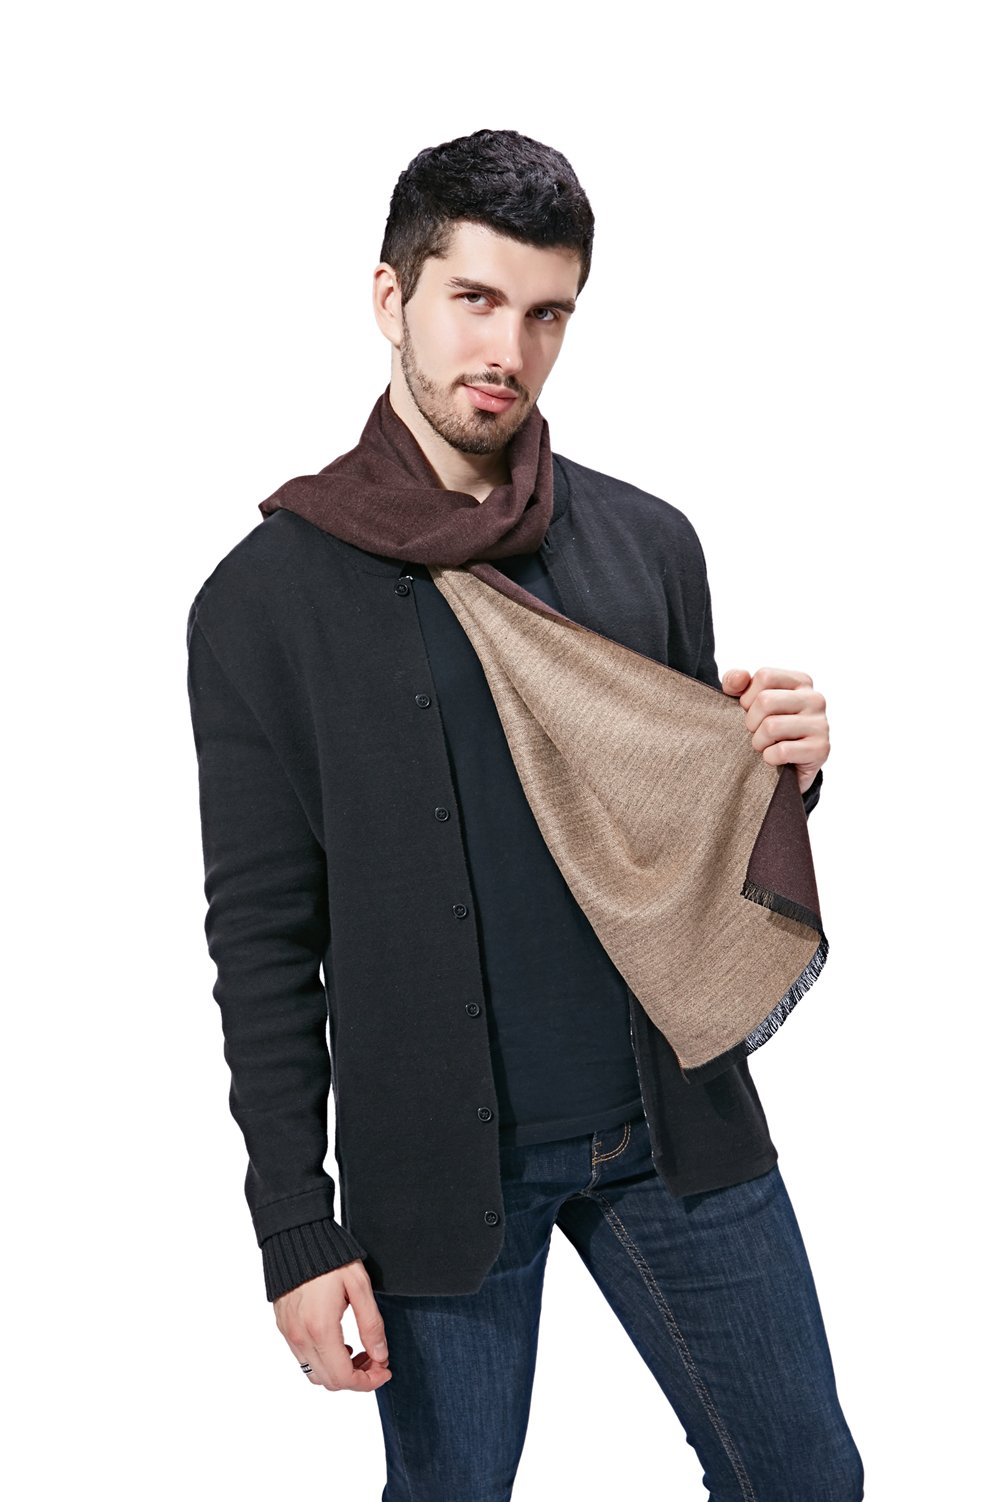 FULLRON Men Winter Scarf Cashmere & cotton blended Scarves(Camel, Coffee)